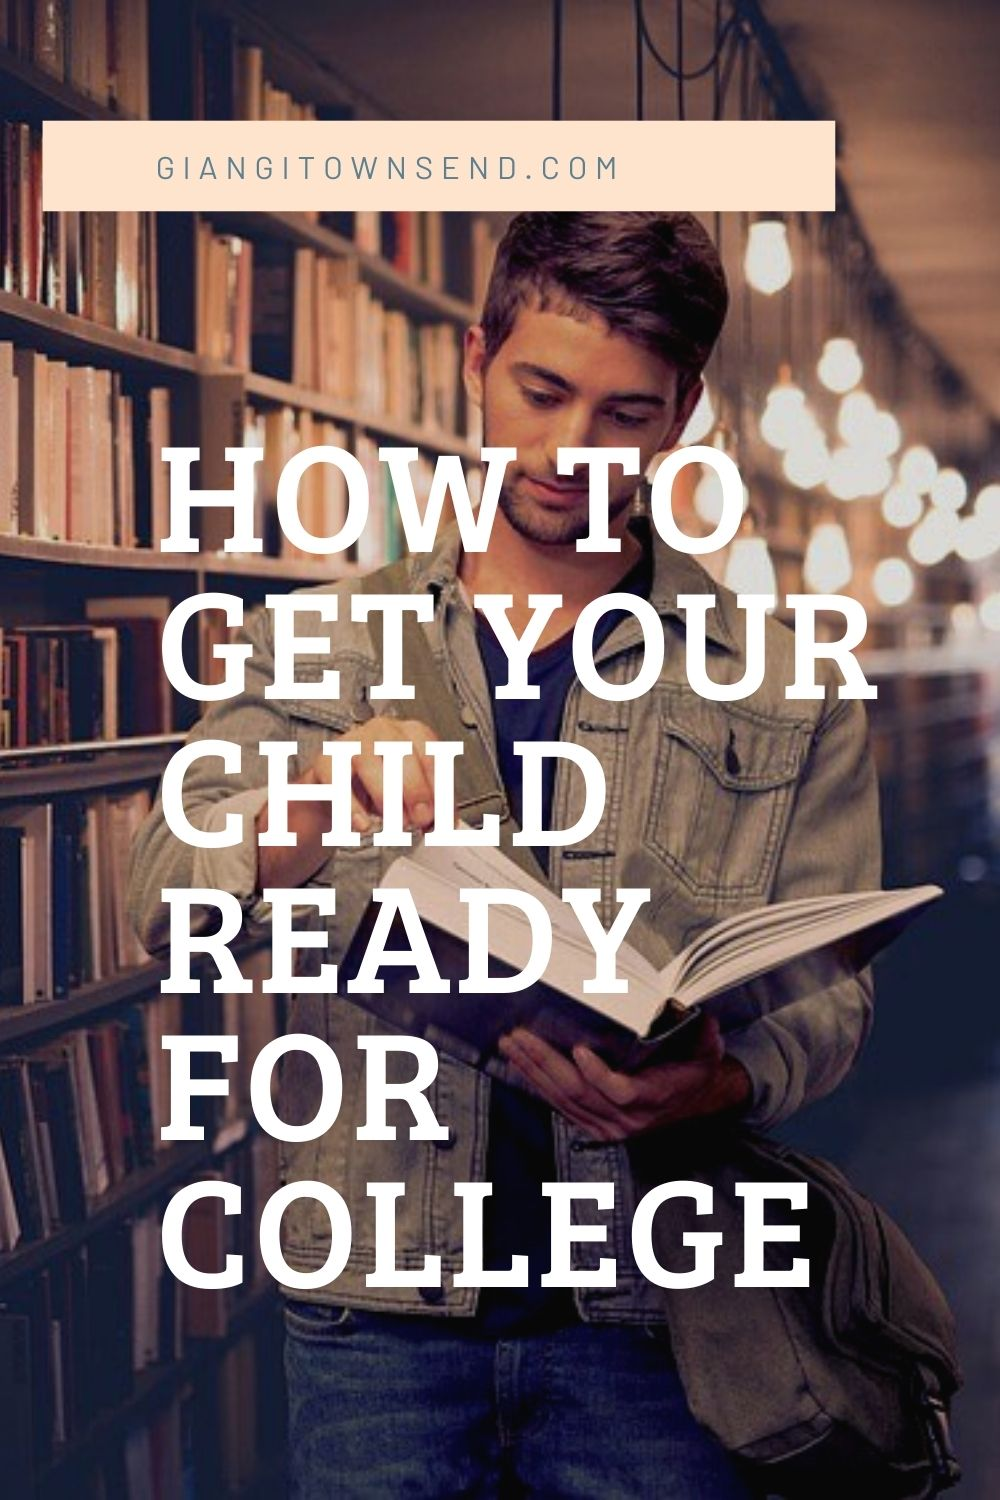 how to get your child ready for college